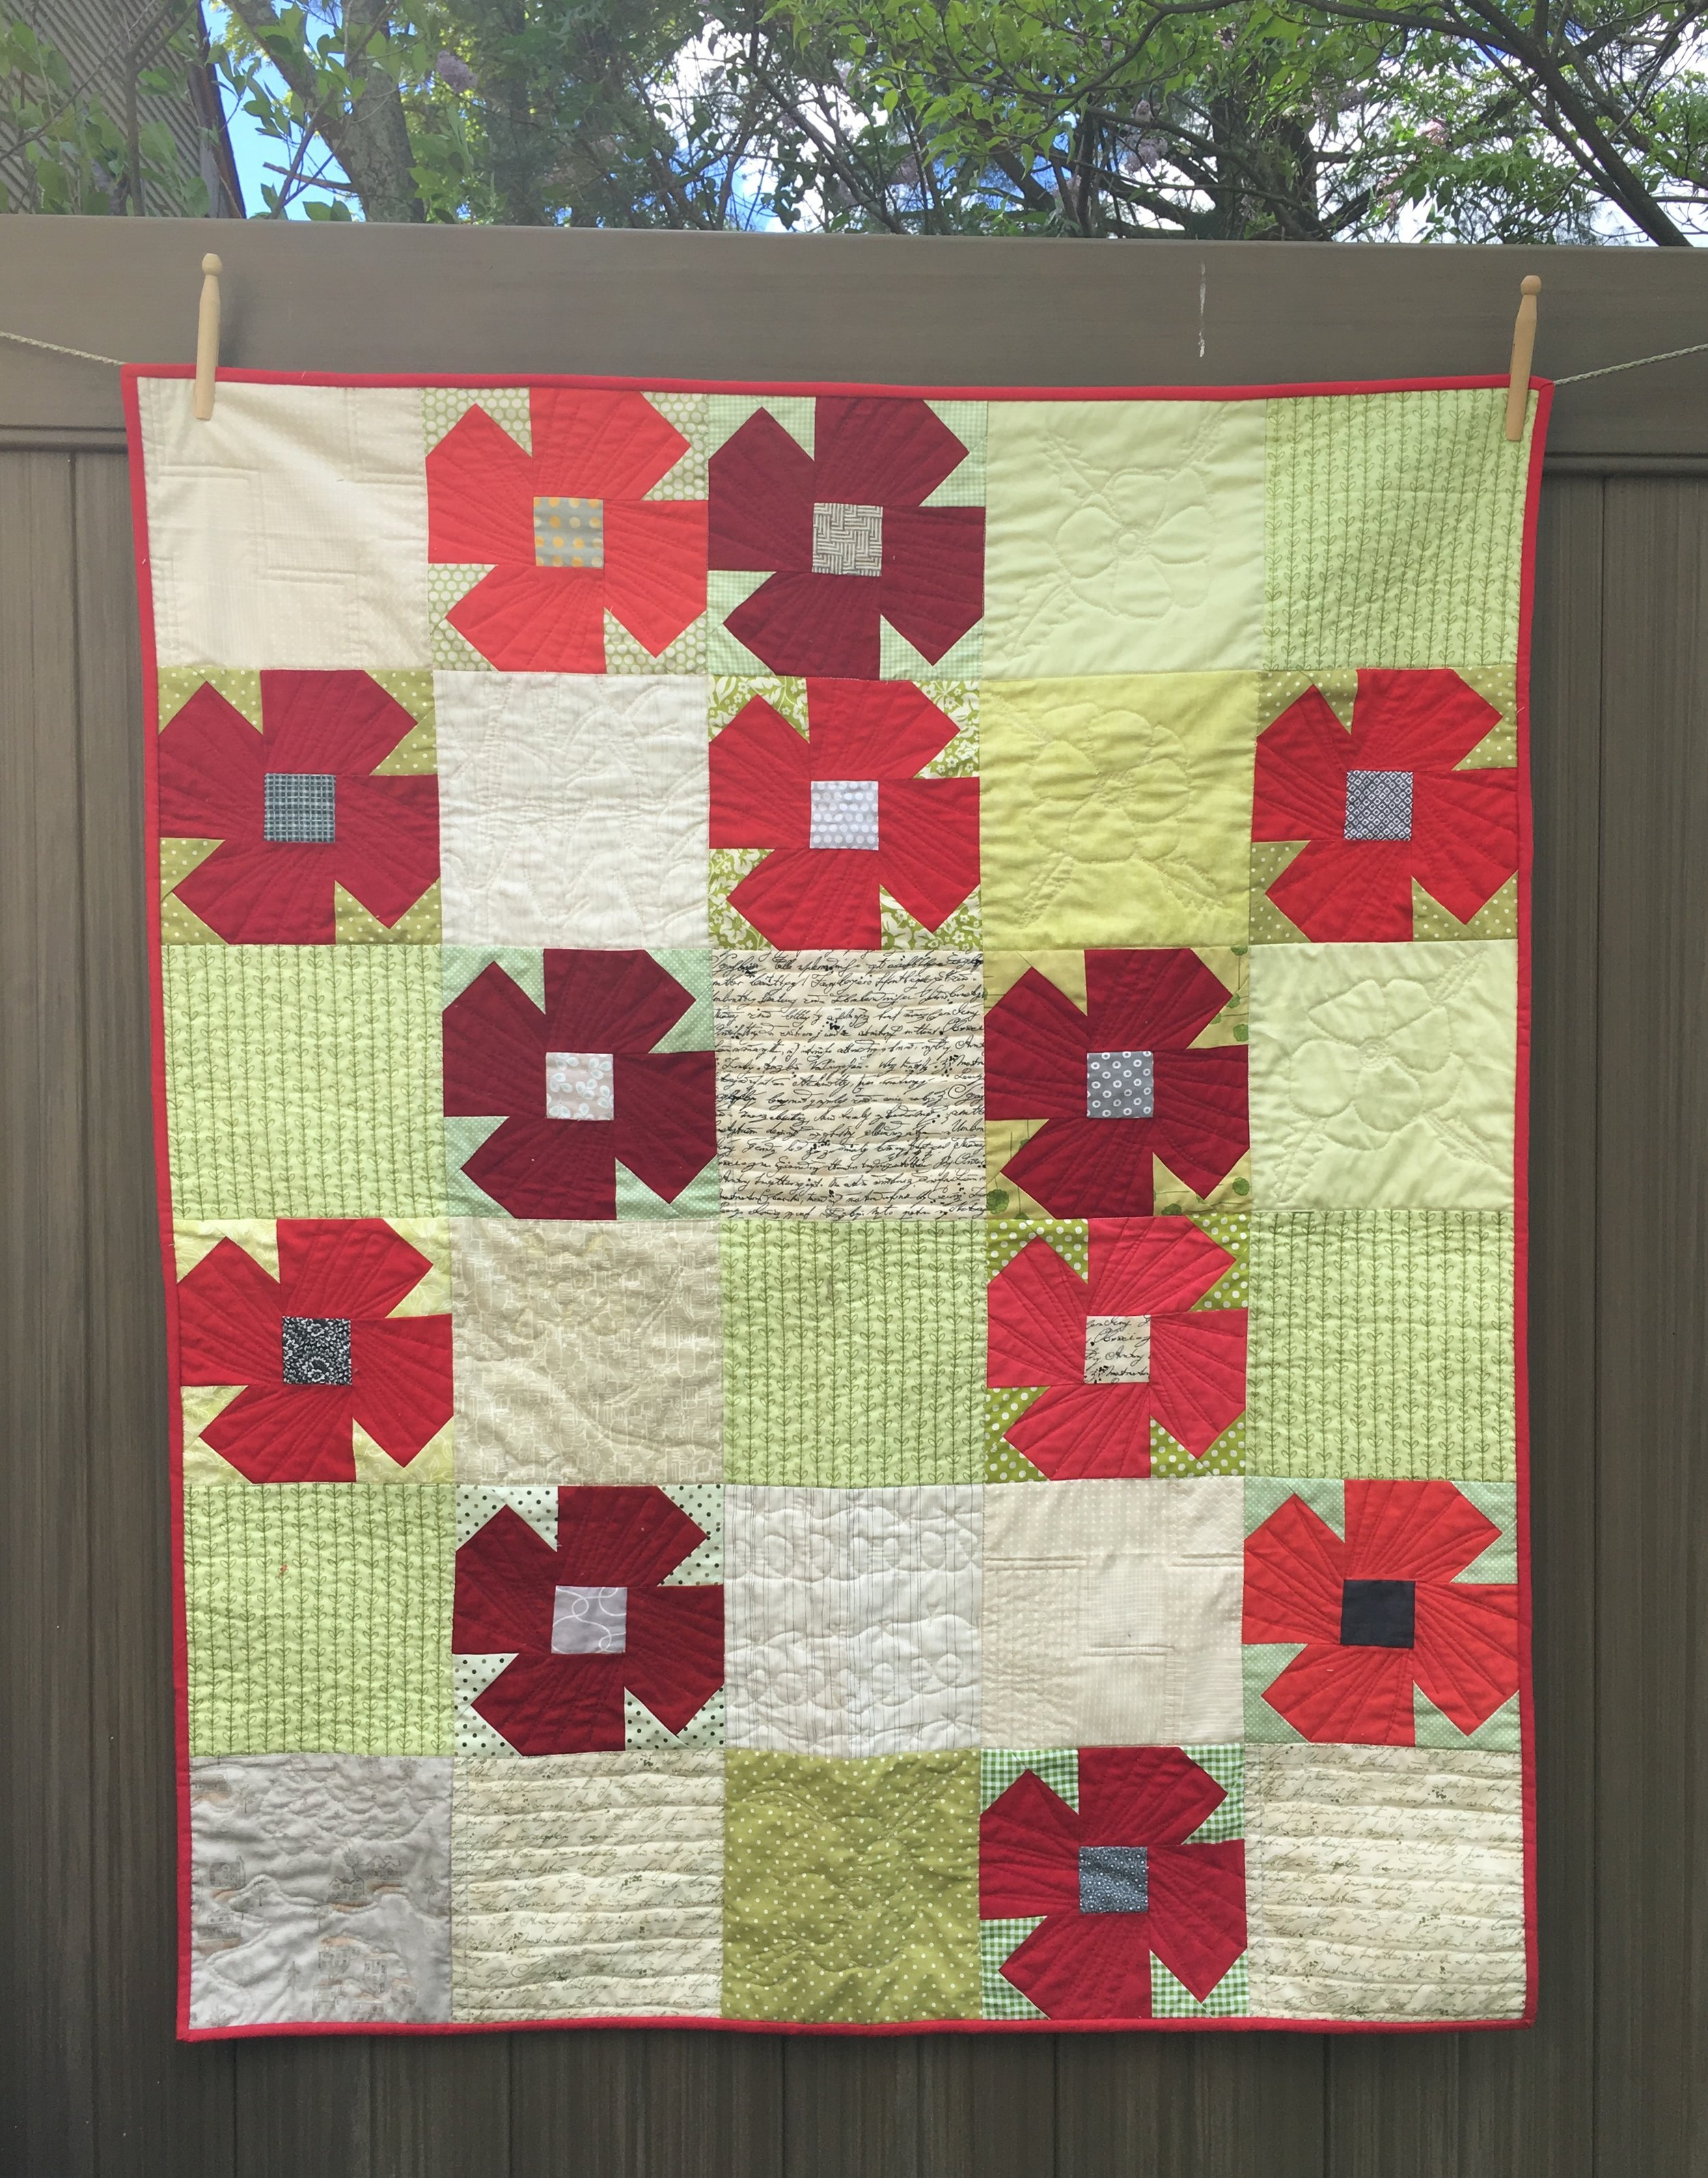 Poppy Quilt, 39.5 x 47 inches